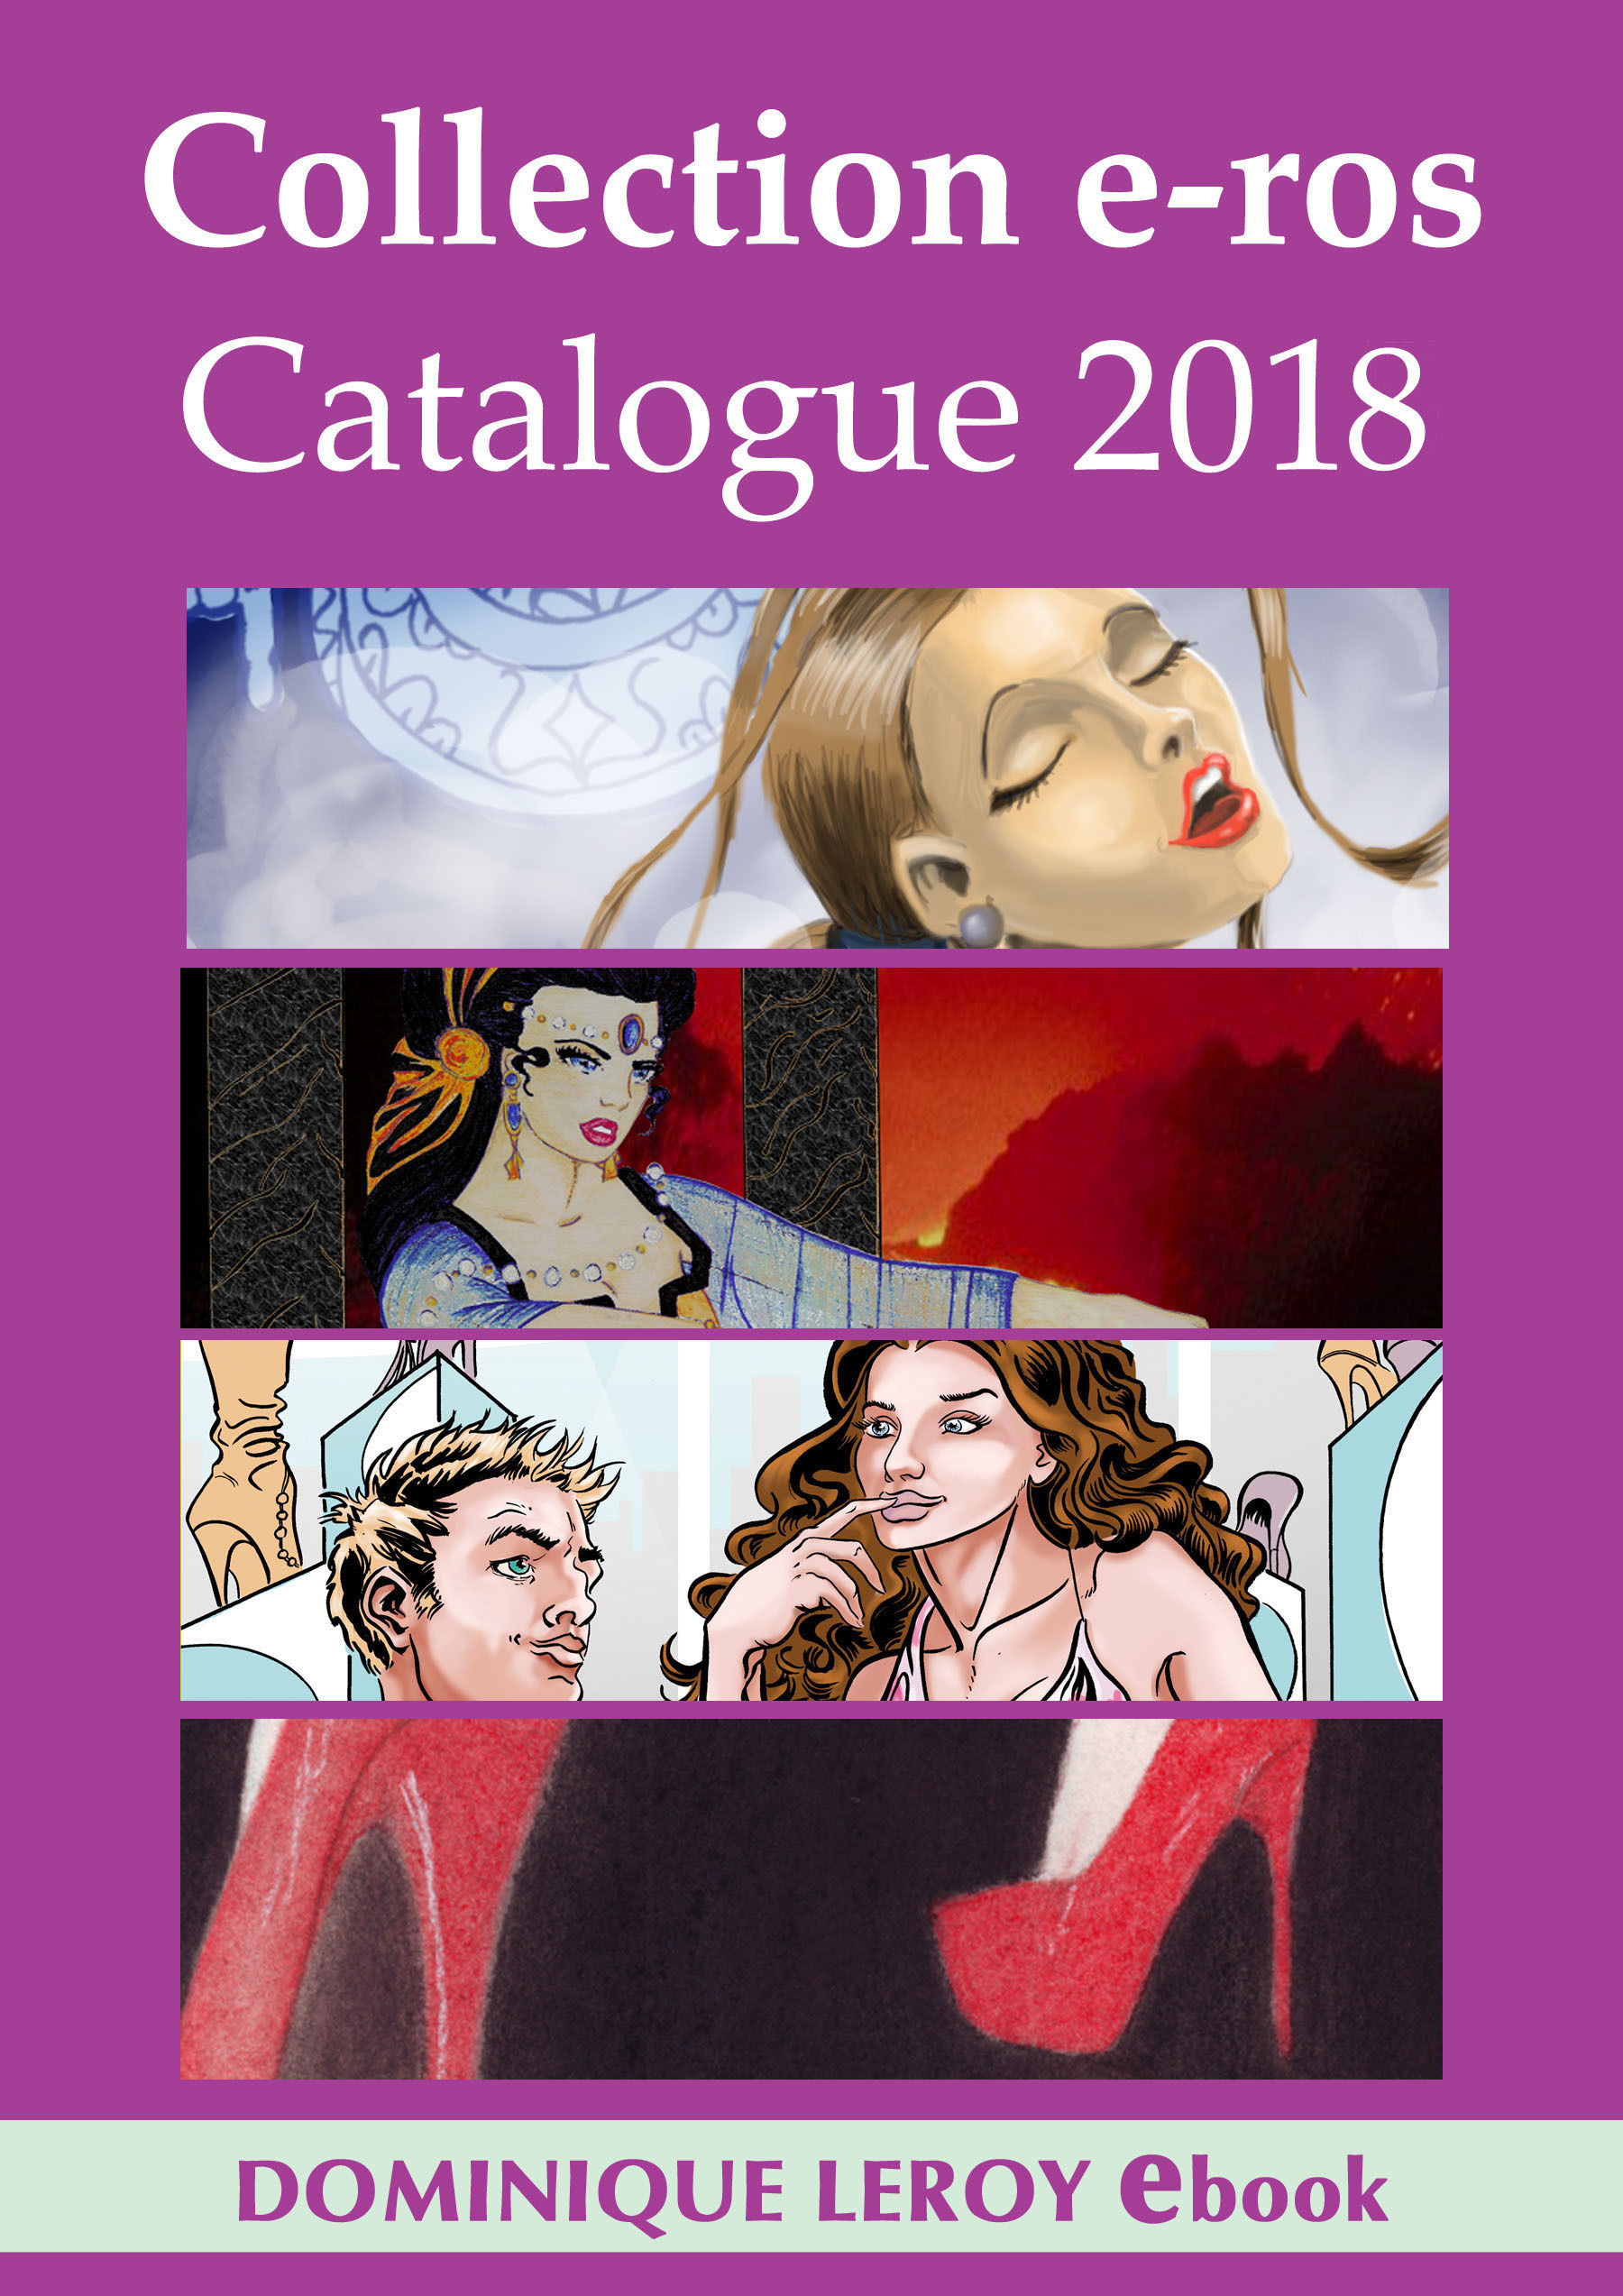 Collection e-ros, Catalogue 2018, Dominique Leroy